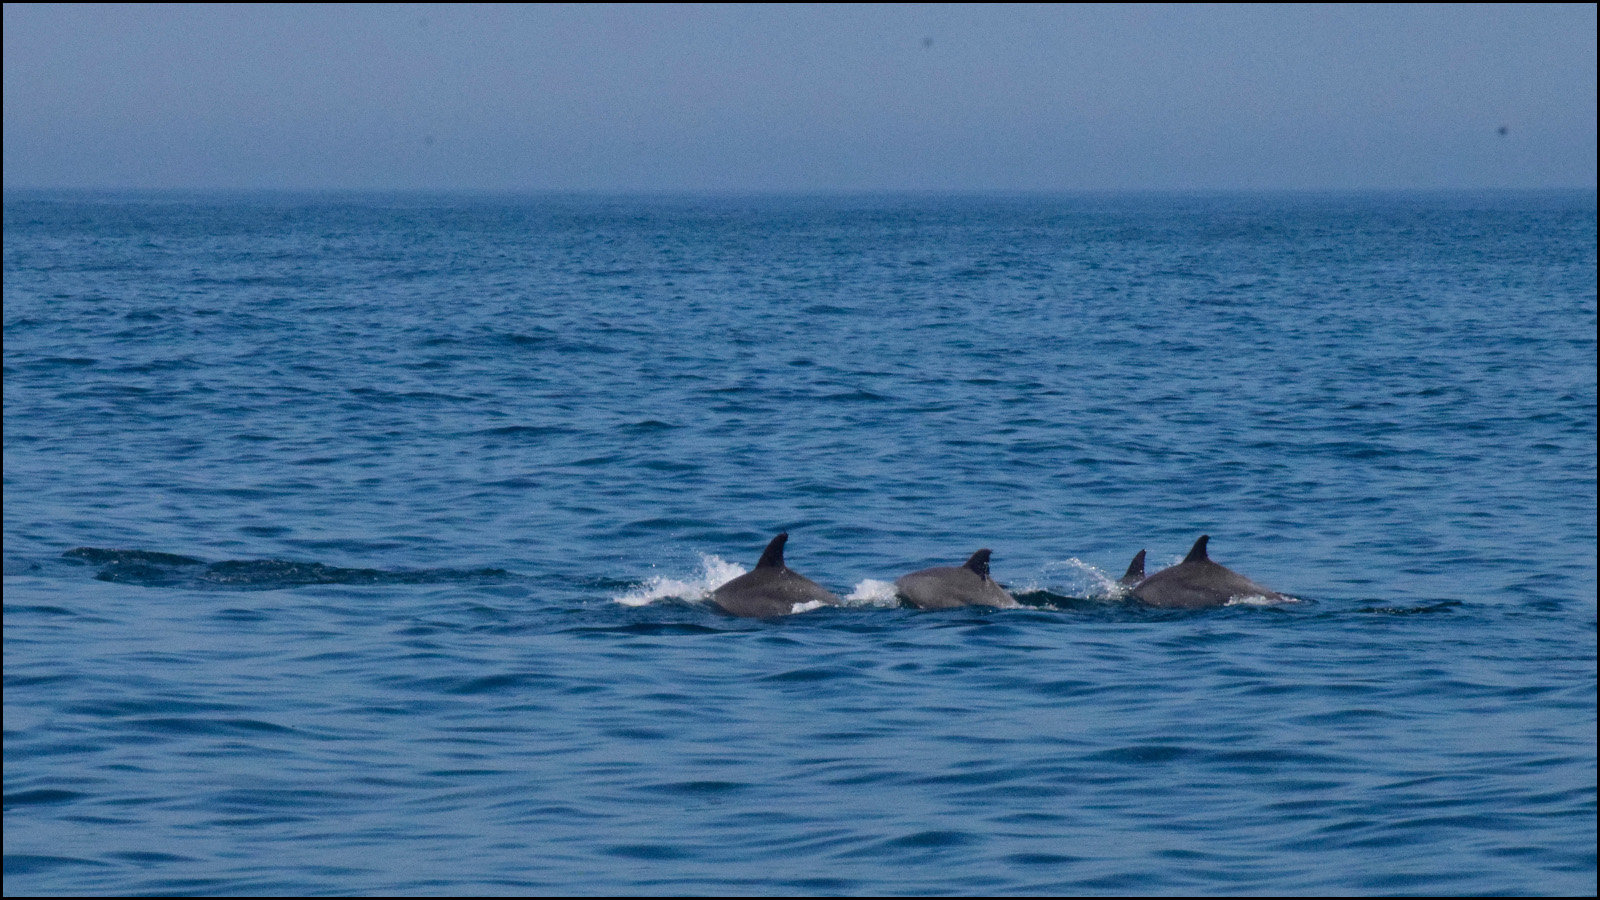 i didn't get any images of the one dolphin jumping. but i can see him jumping in my memory (c) mark somple 2019